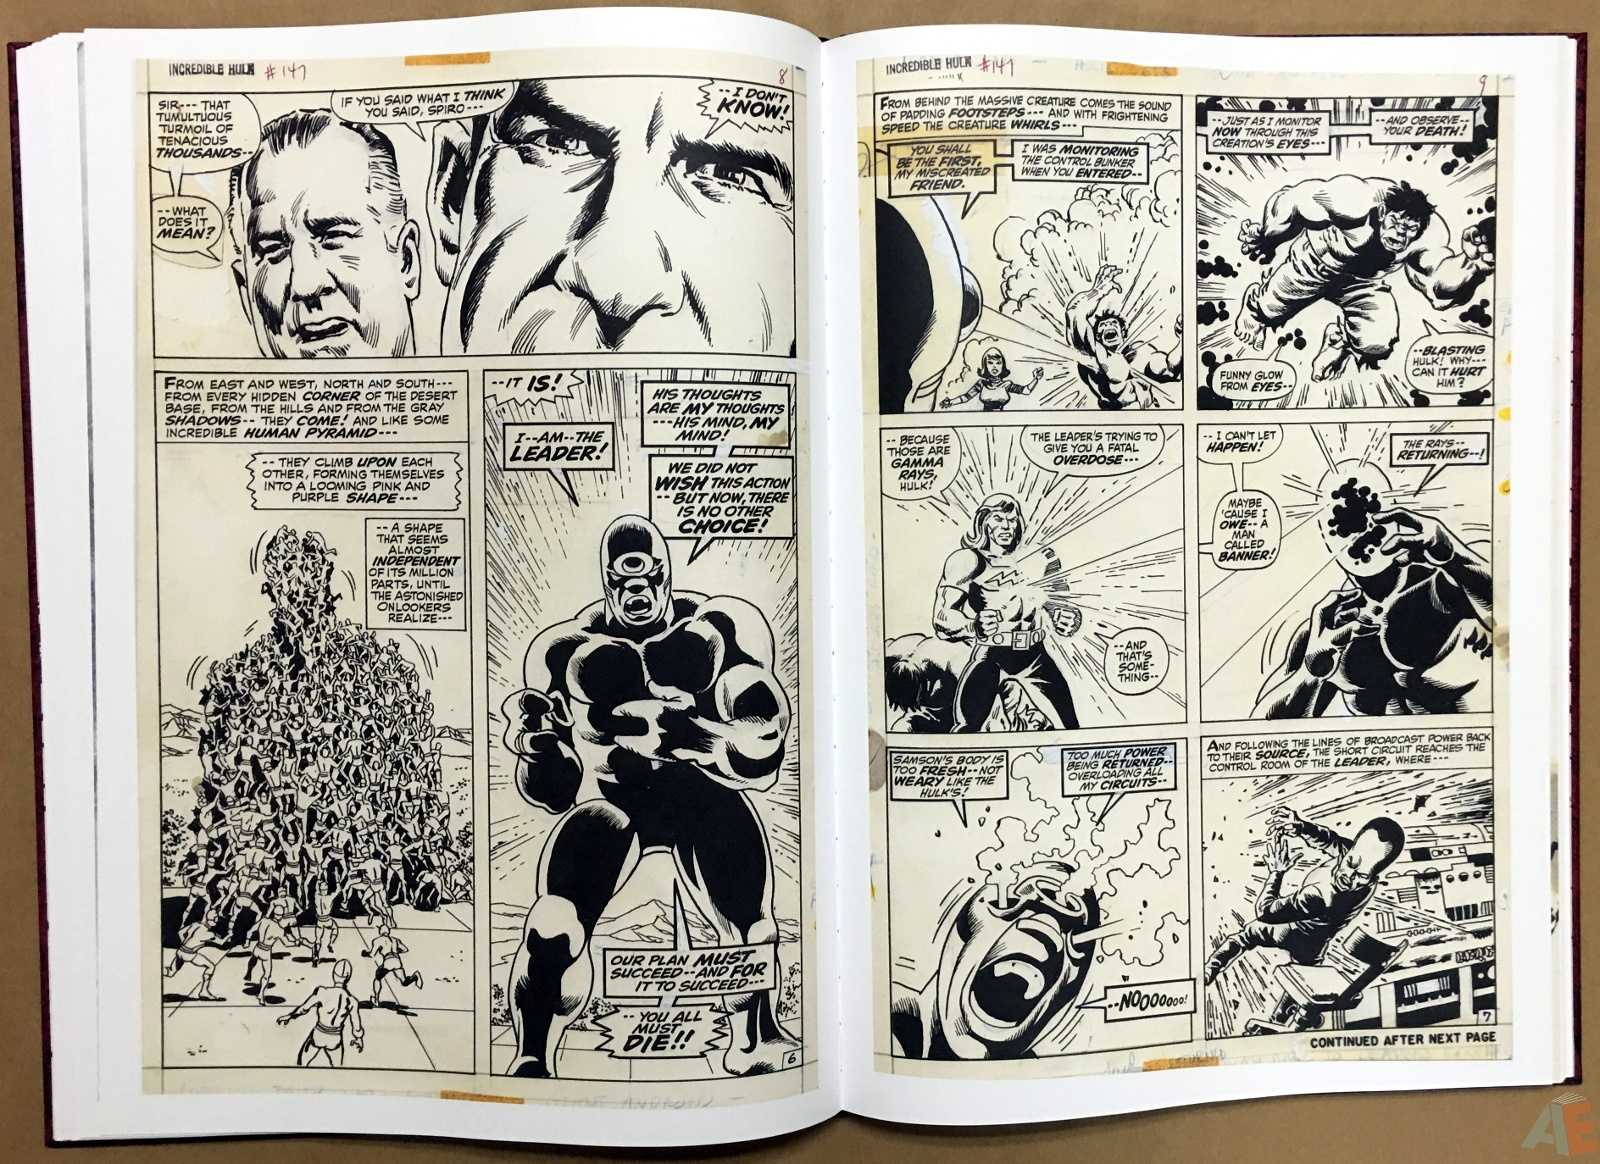 Herb Trimpe's The Incredible Hulk Artist's Edition 26